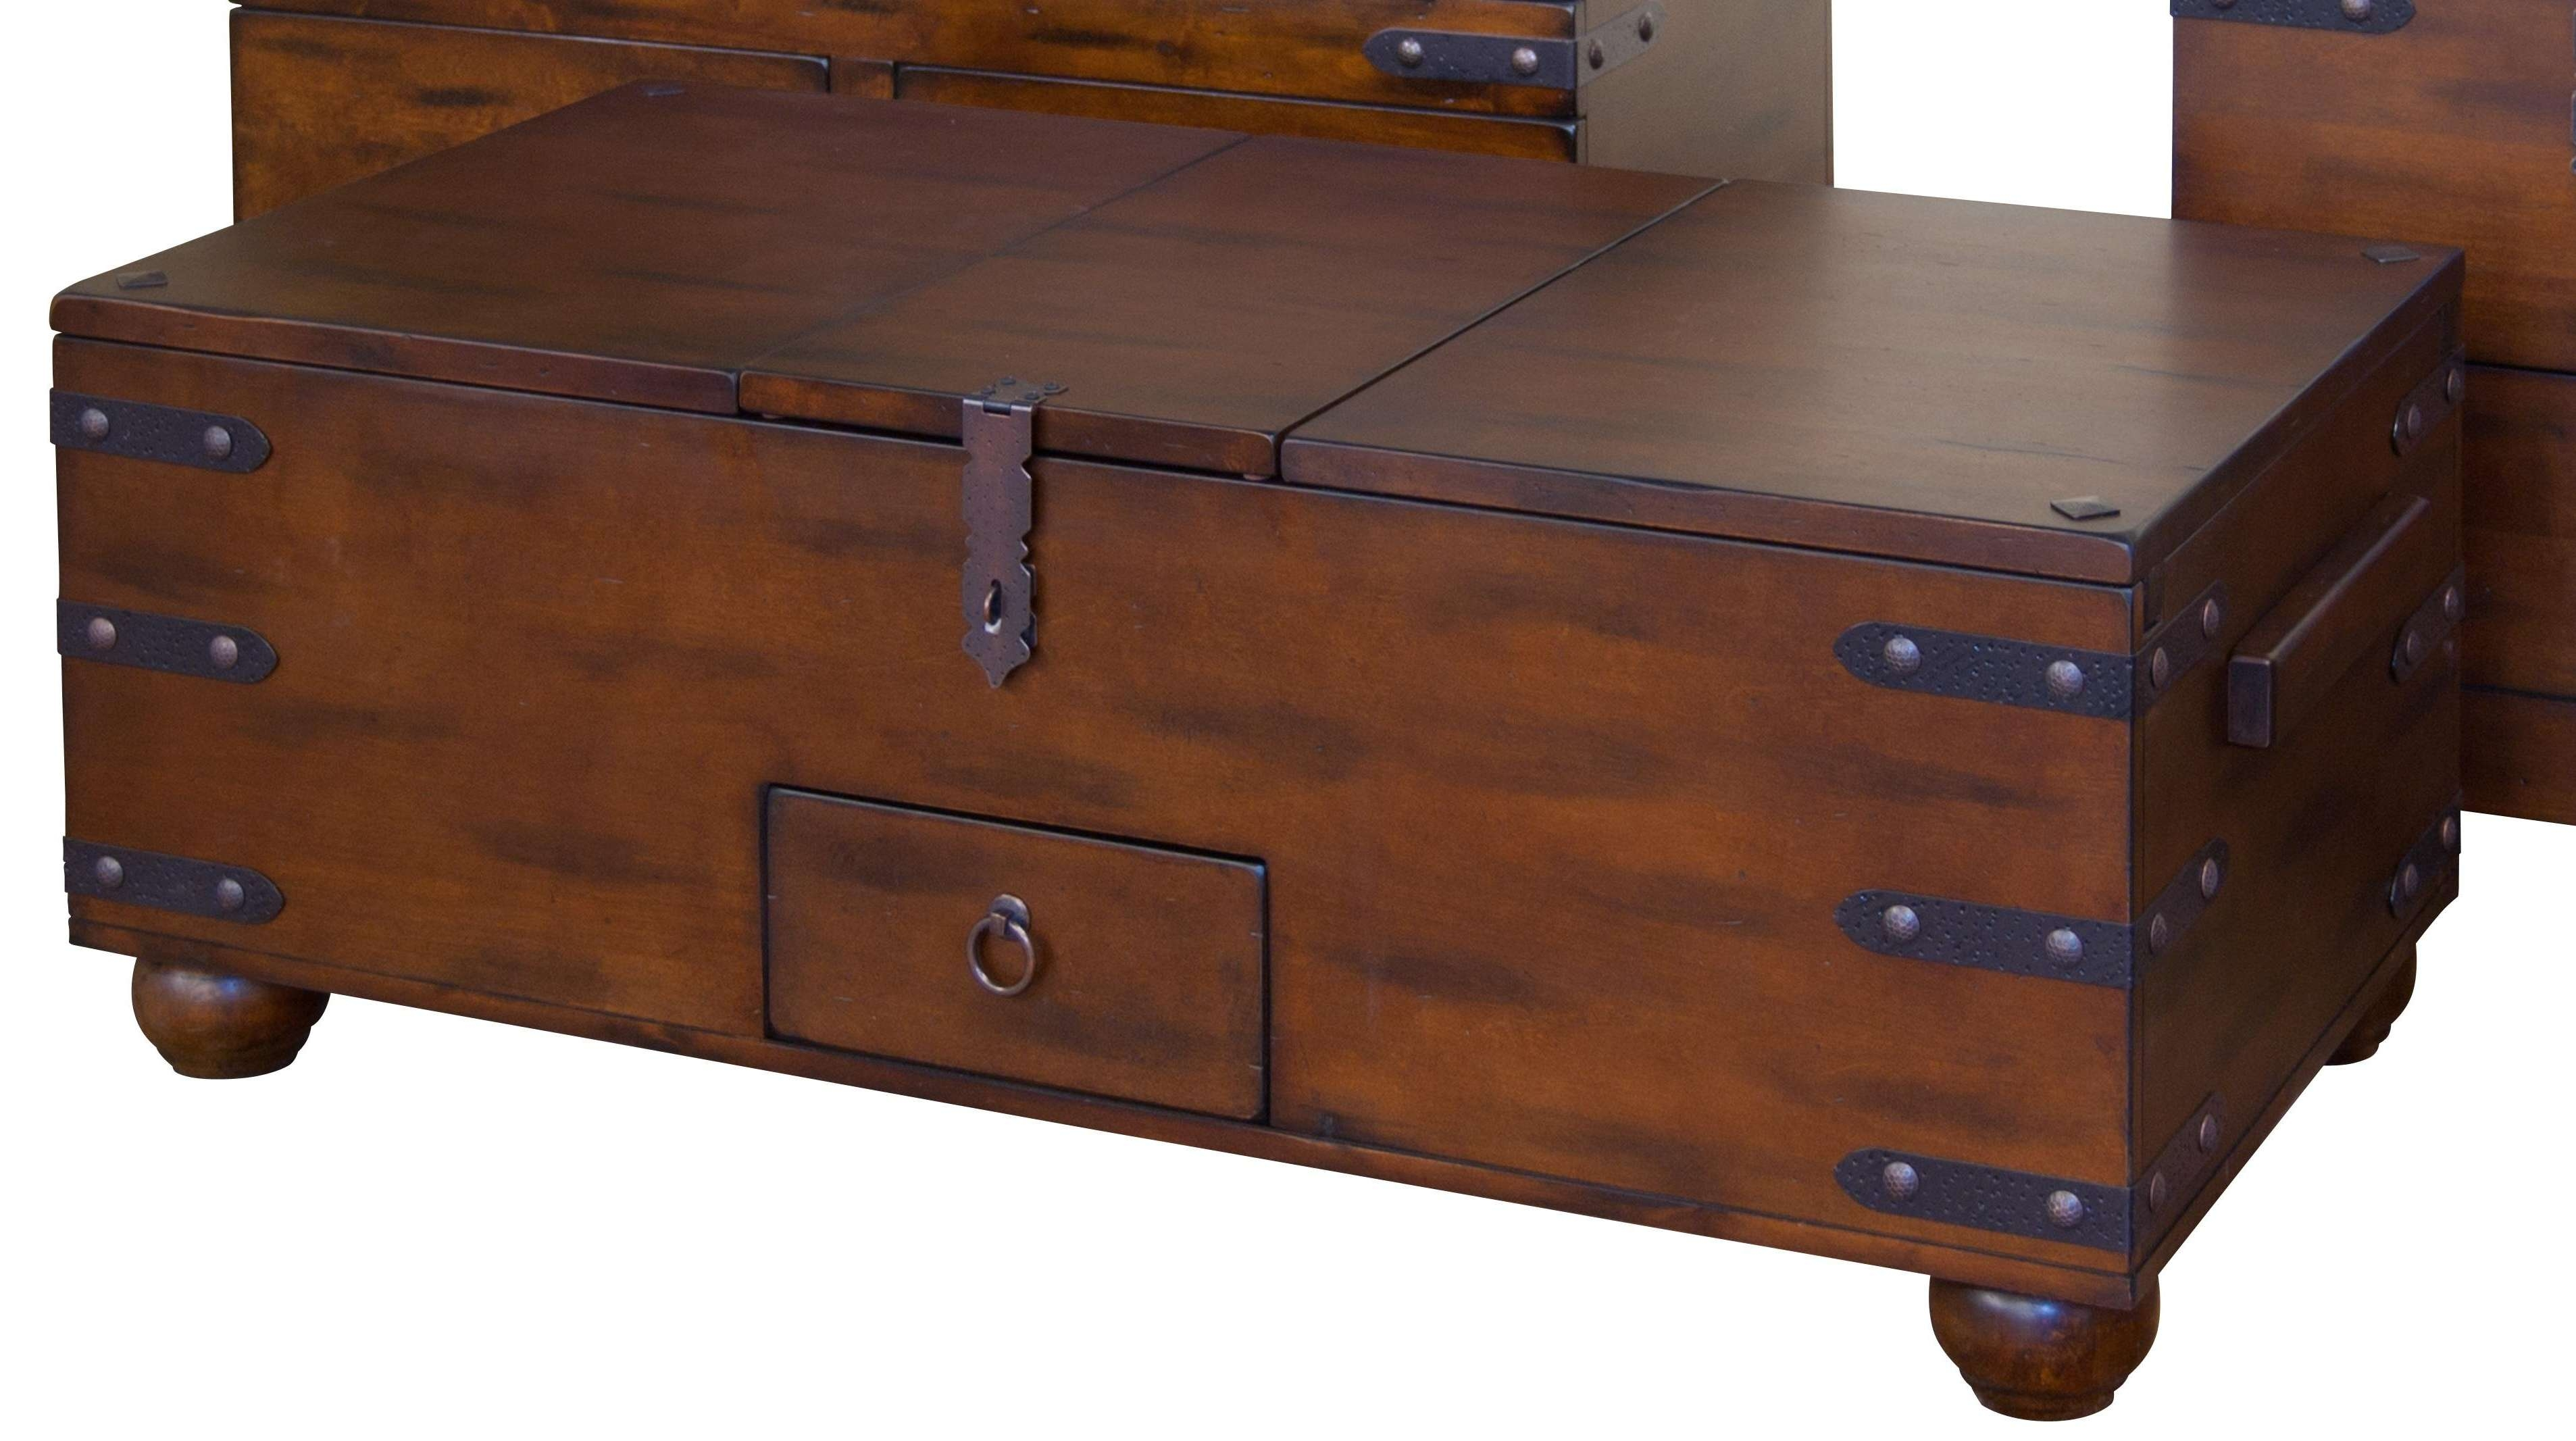 Coffee Table Trunk: Most Popular Furniture For Living Room – Ruchi Throughout Most Up To Date Trunks Coffee Tables (View 1 of 20)